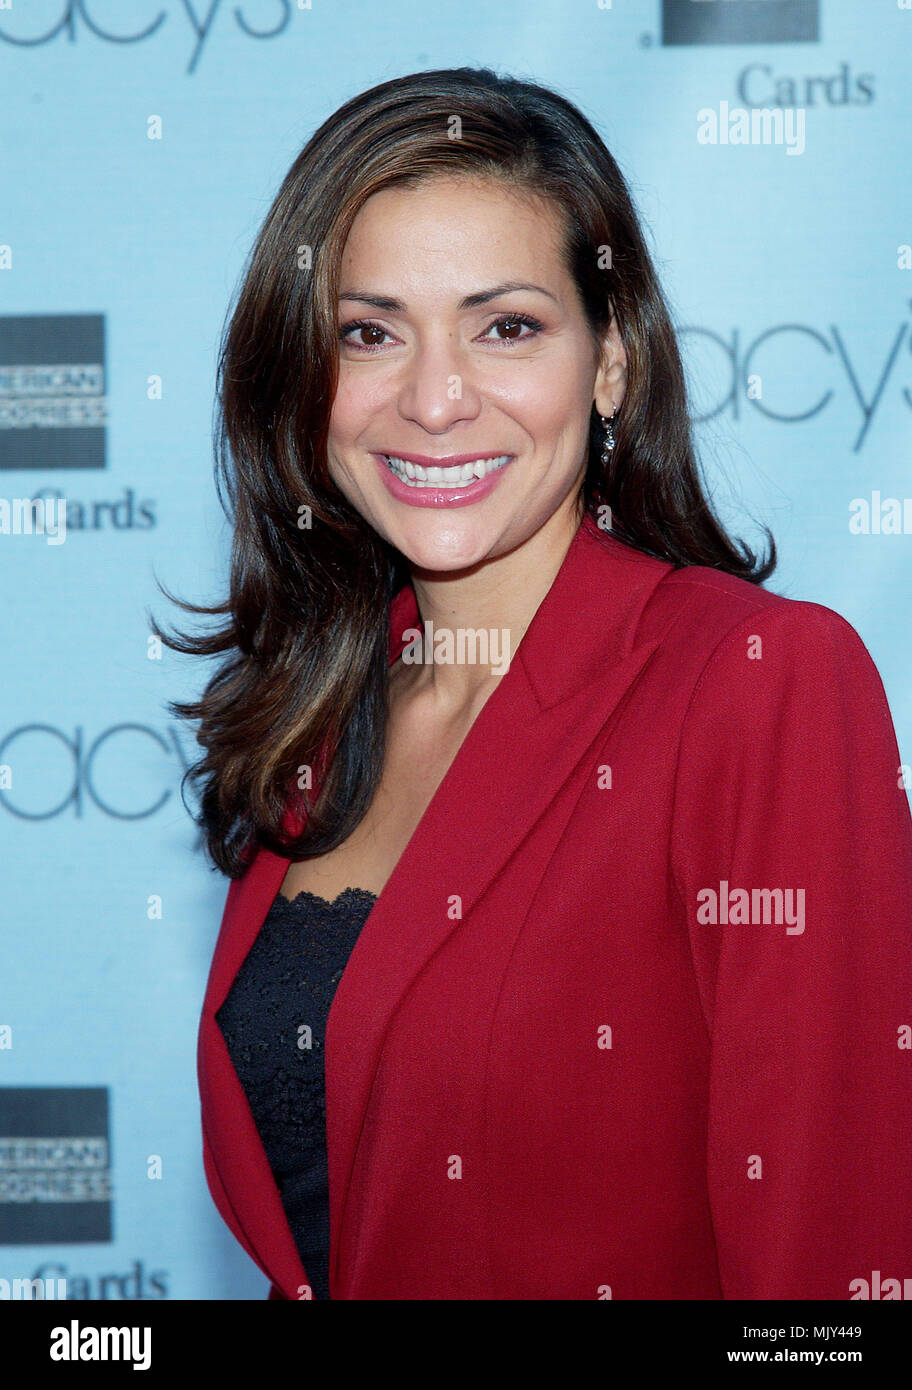 Constance Marie arriving at the 20th Macy's and American Express Anniversary Gala at the Barker Hangar in Santa Monica Los Angeles. September 28, 2002.           -            ConstanceMarie008.jpgConstanceMarie008  Event in Hollywood Life - California,  Red Carpet Event, Vertical, USA, Film Industry, Celebrities,  Photography, Bestof, Arts Culture and Entertainment, Topix Celebrities fashion /  from the Red Carpet-, one person, Vertical, Best of, Hollywood Life, Event in Hollywood Life - California,  Red Carpet and backstage, USA, Film Industry, Celebrities,  movie celebrities, TV celebrities, - Stock Image